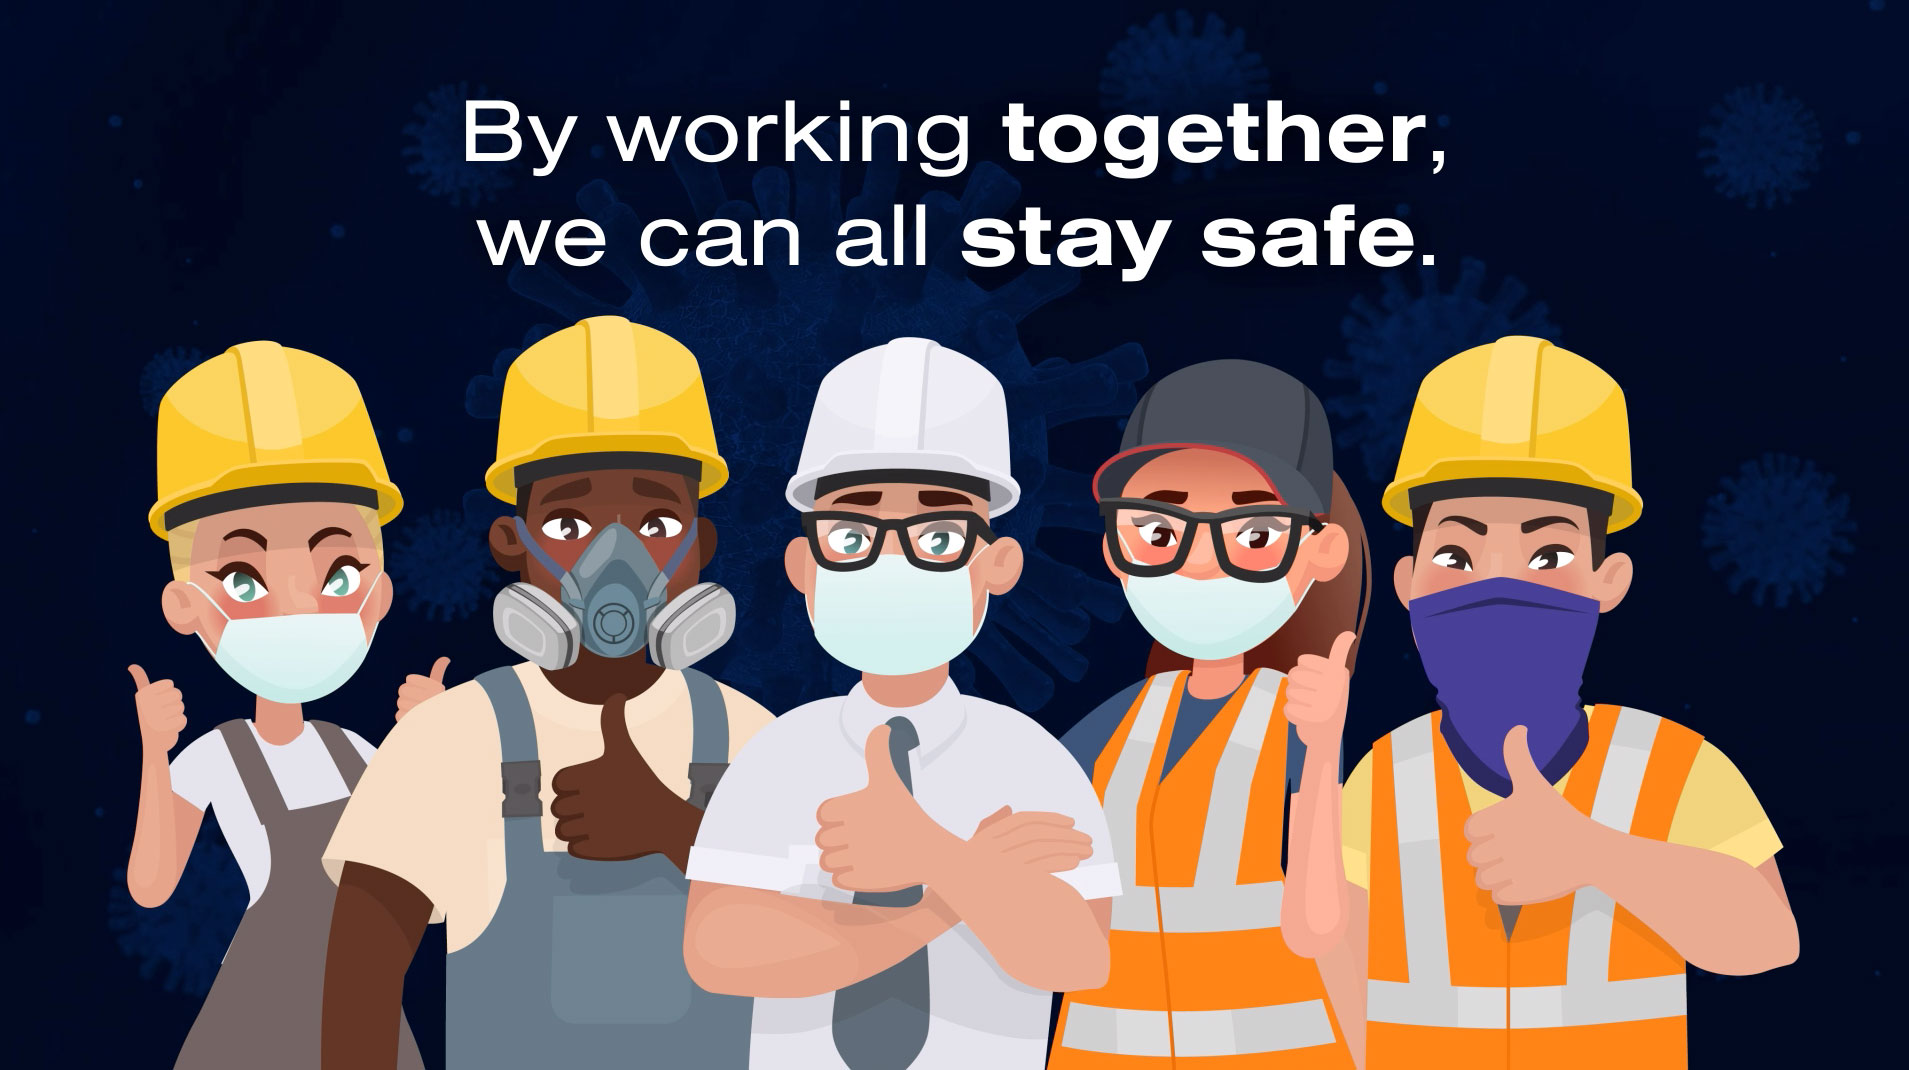 CICV urges construction workers to wear face coverings correctly